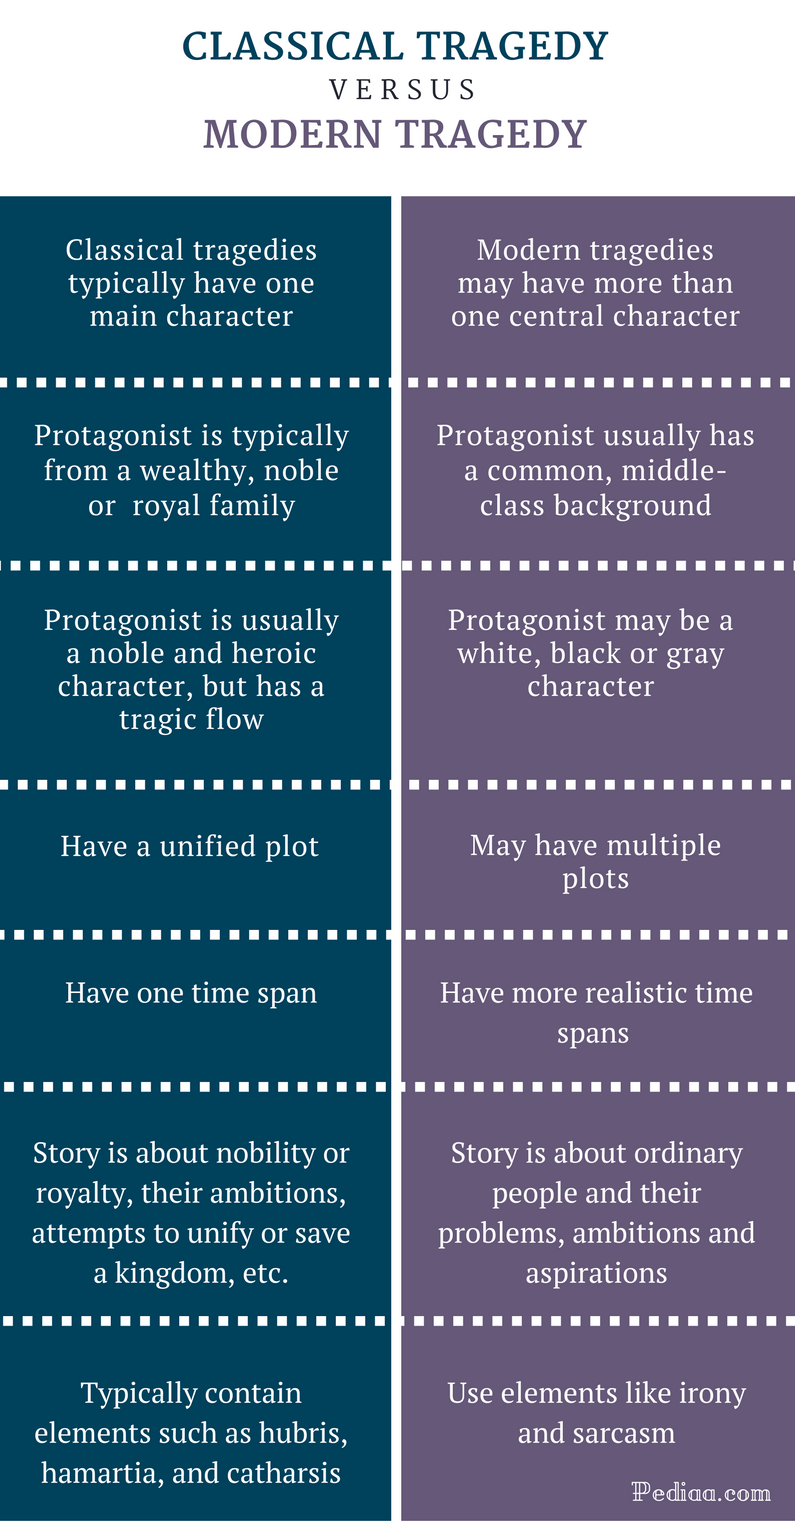 Difference Between Classical and Modern Tragedy - Comparison Summary